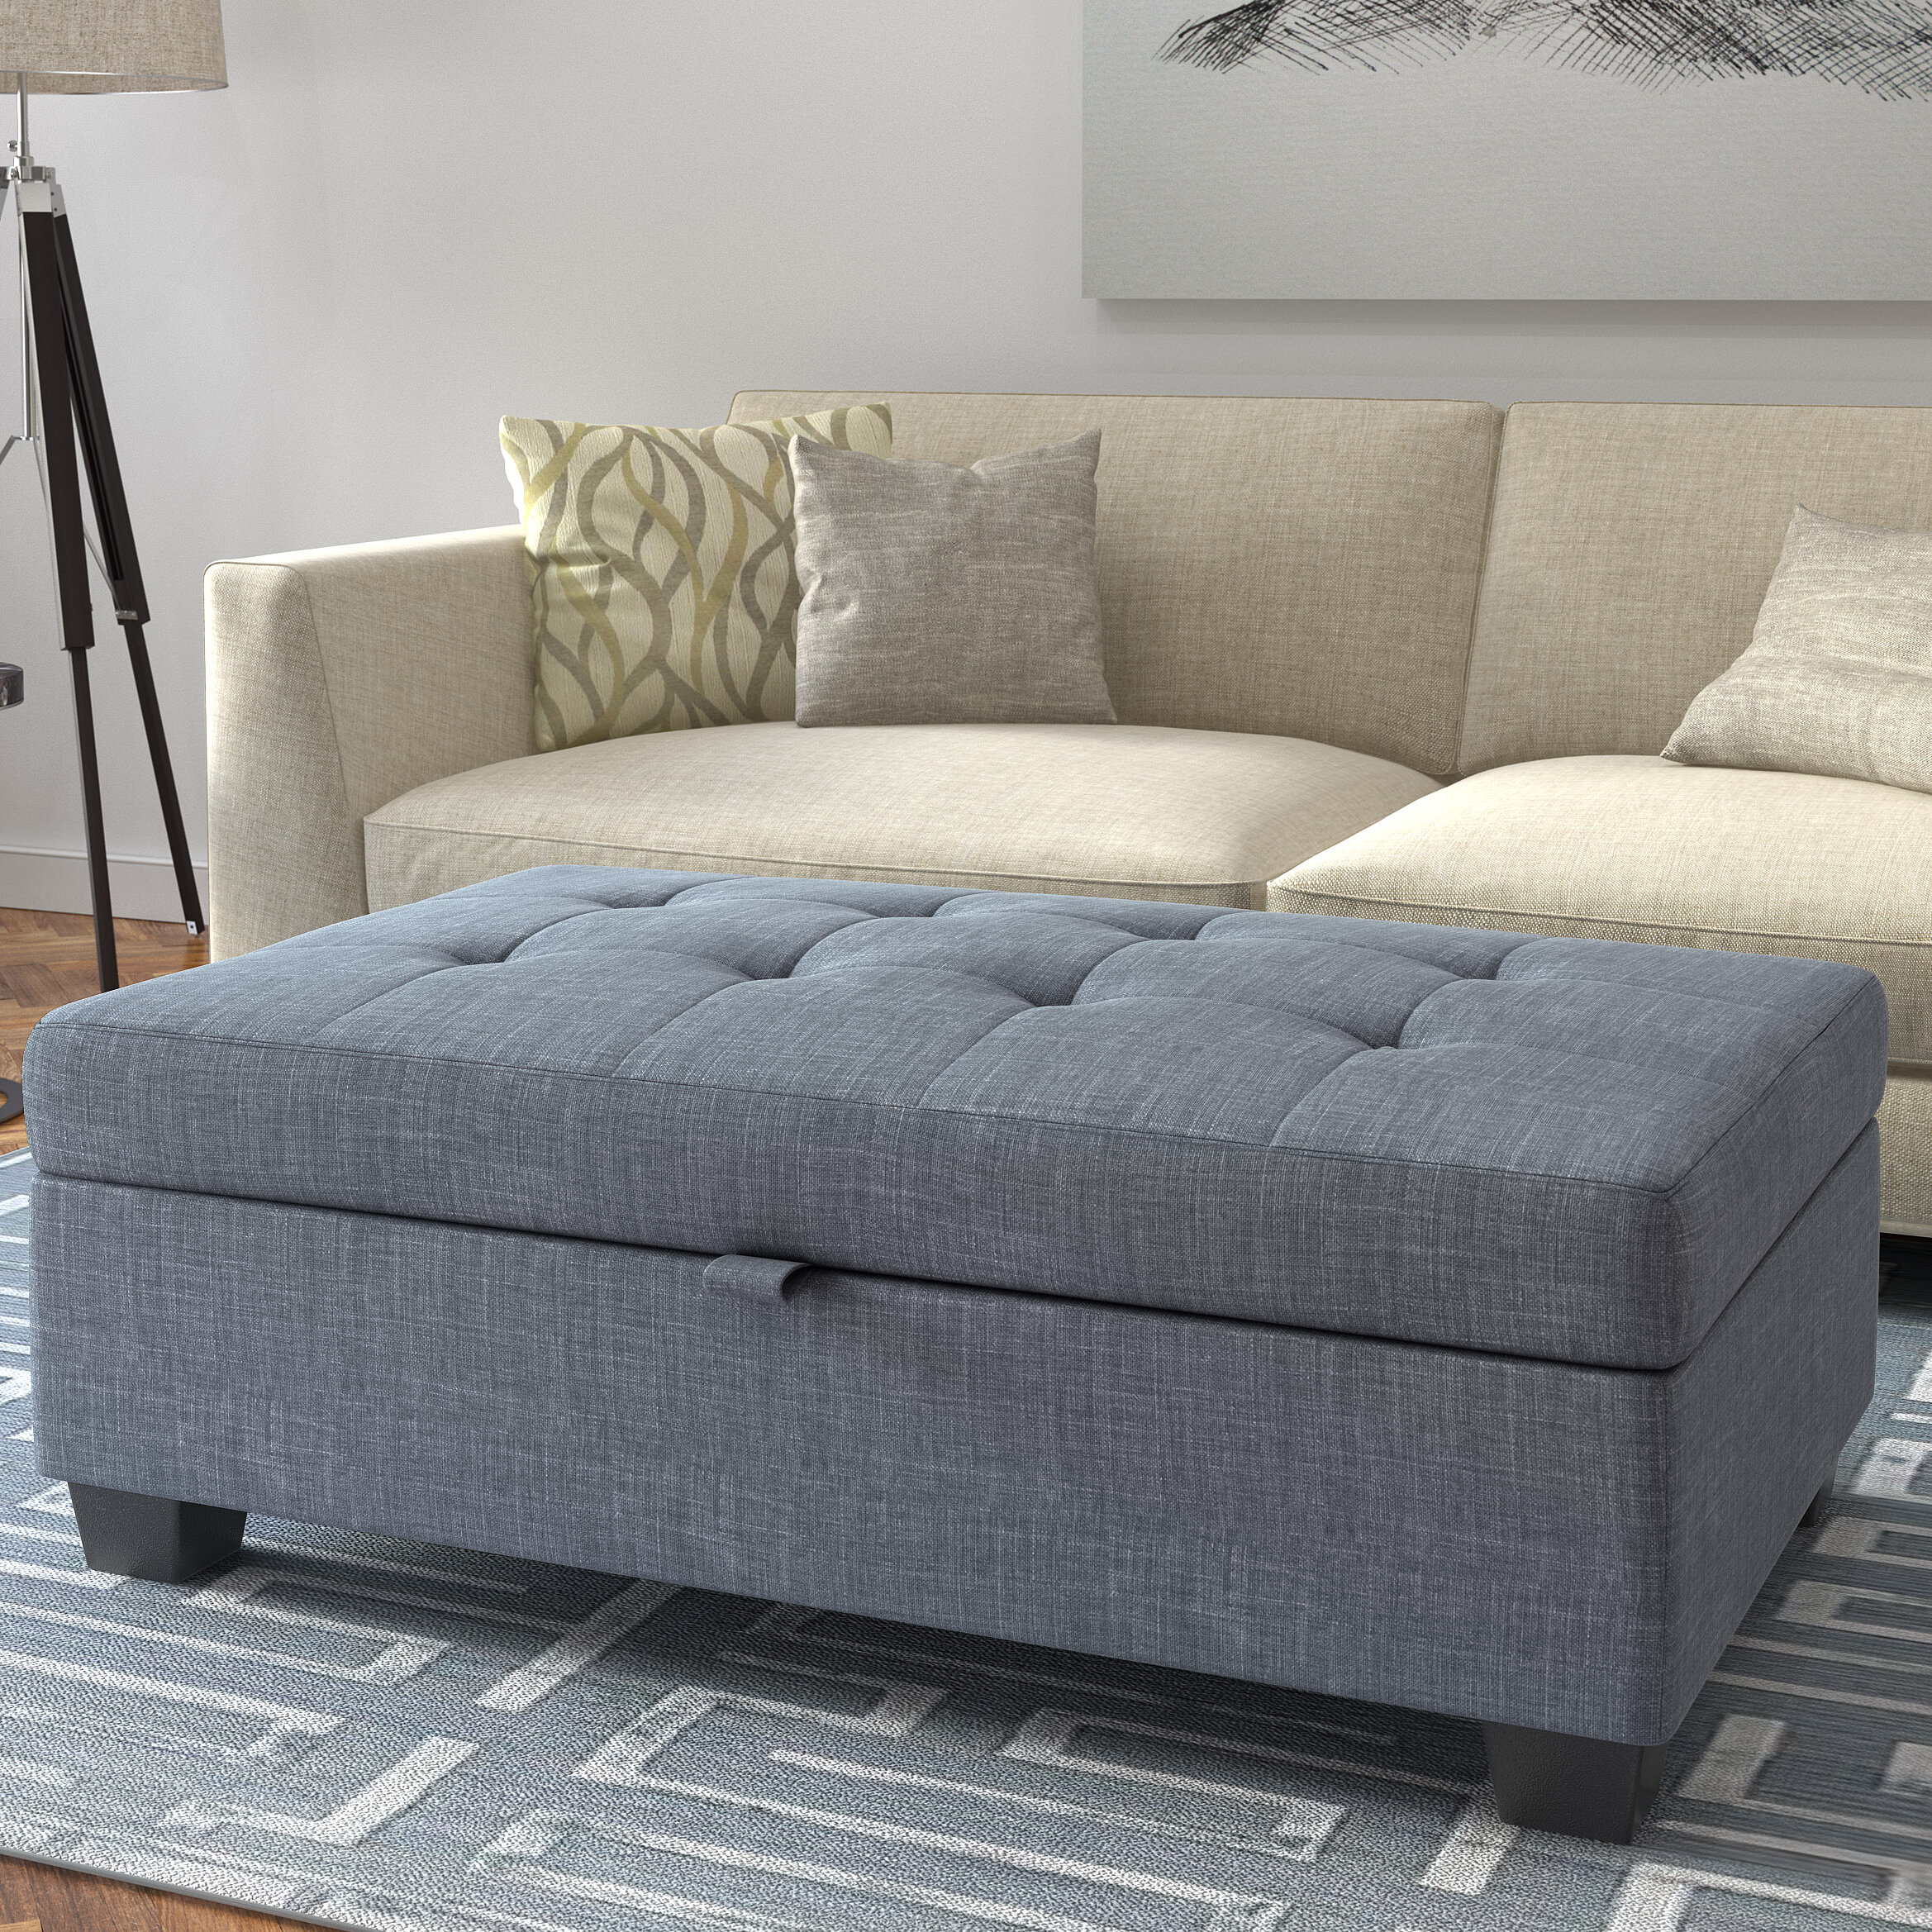 Cool Kincade Tufted Storage Ottoman Gmtry Best Dining Table And Chair Ideas Images Gmtryco